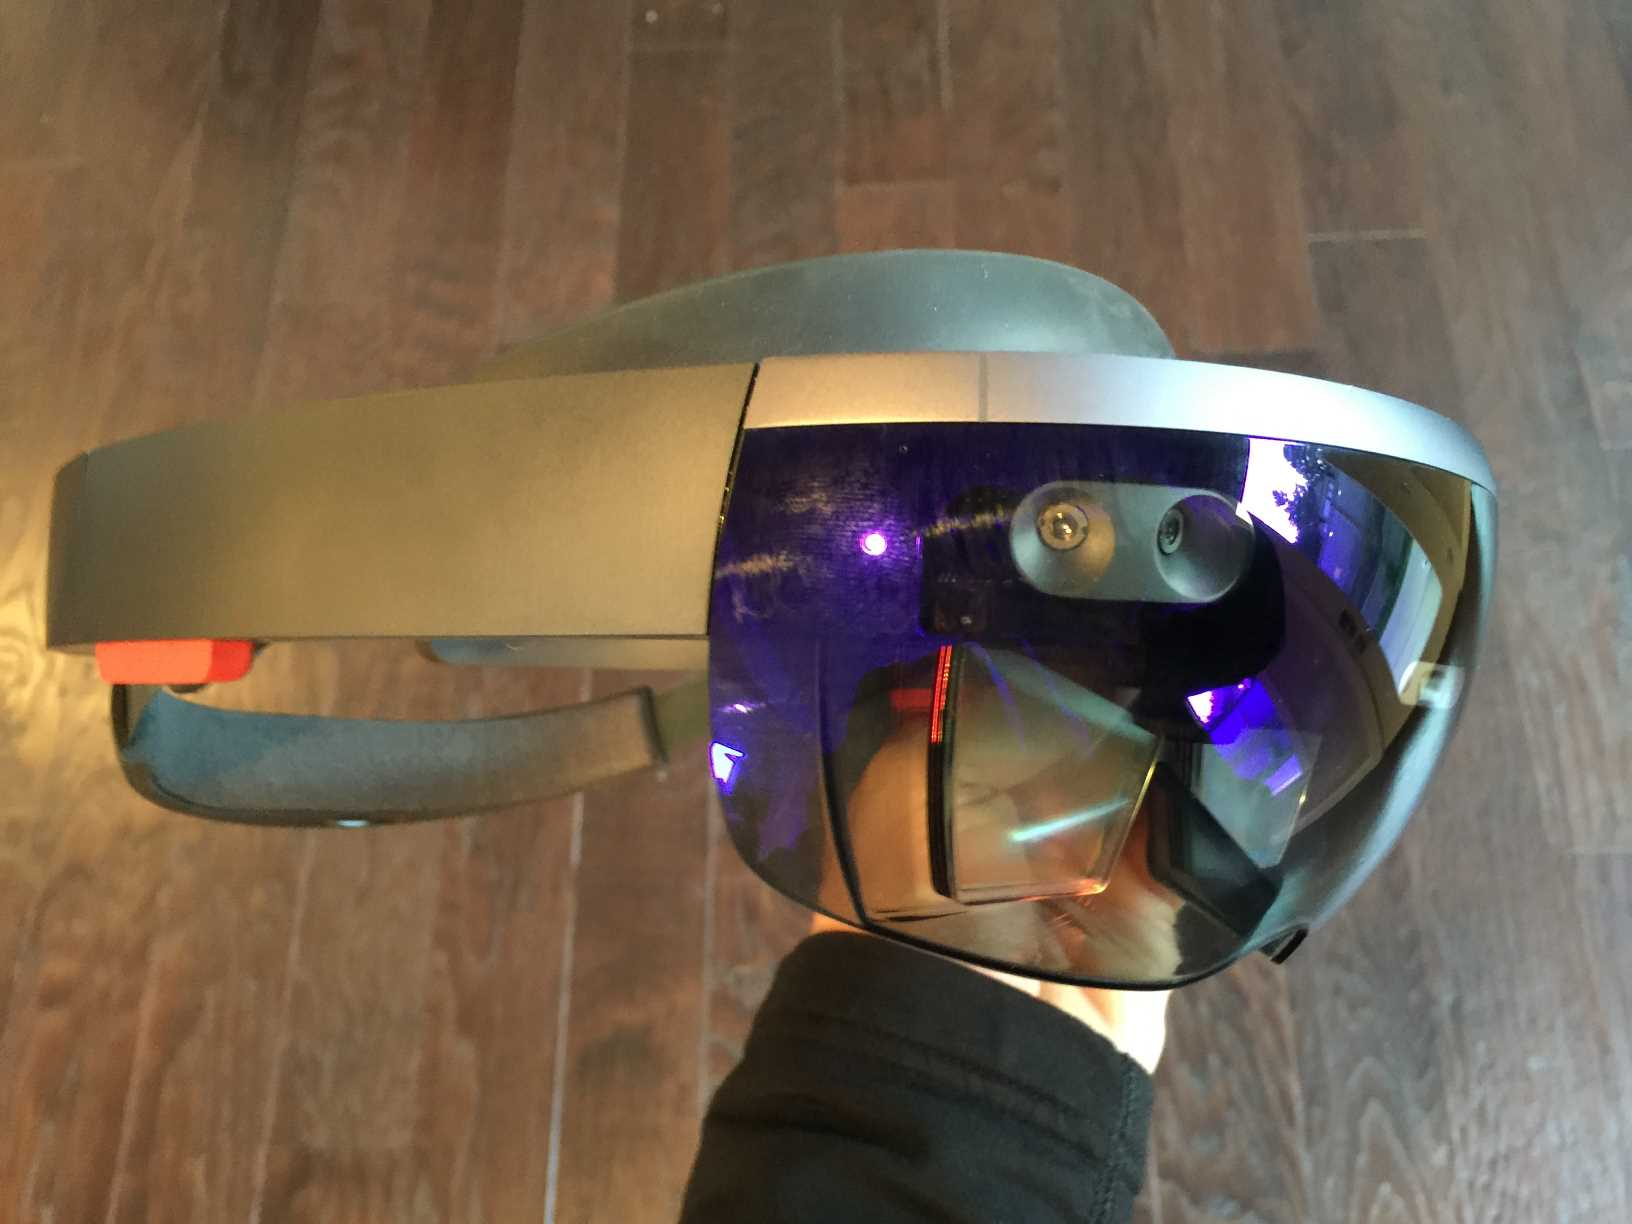 Experience with Microsoft HoloLens hands on